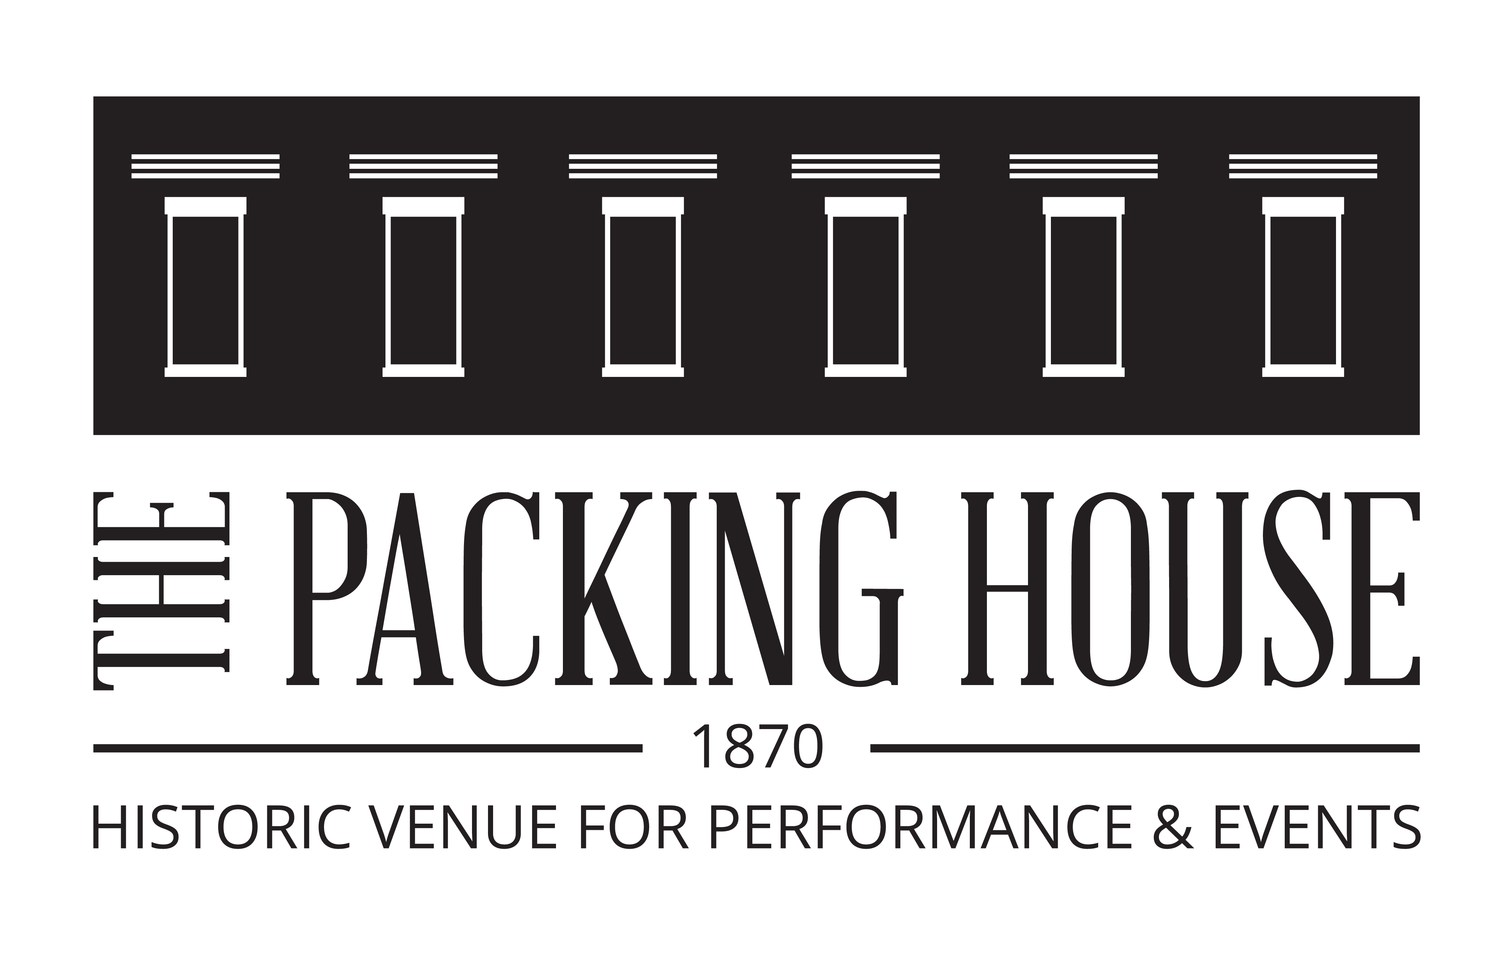 Upcoming — The Packing House